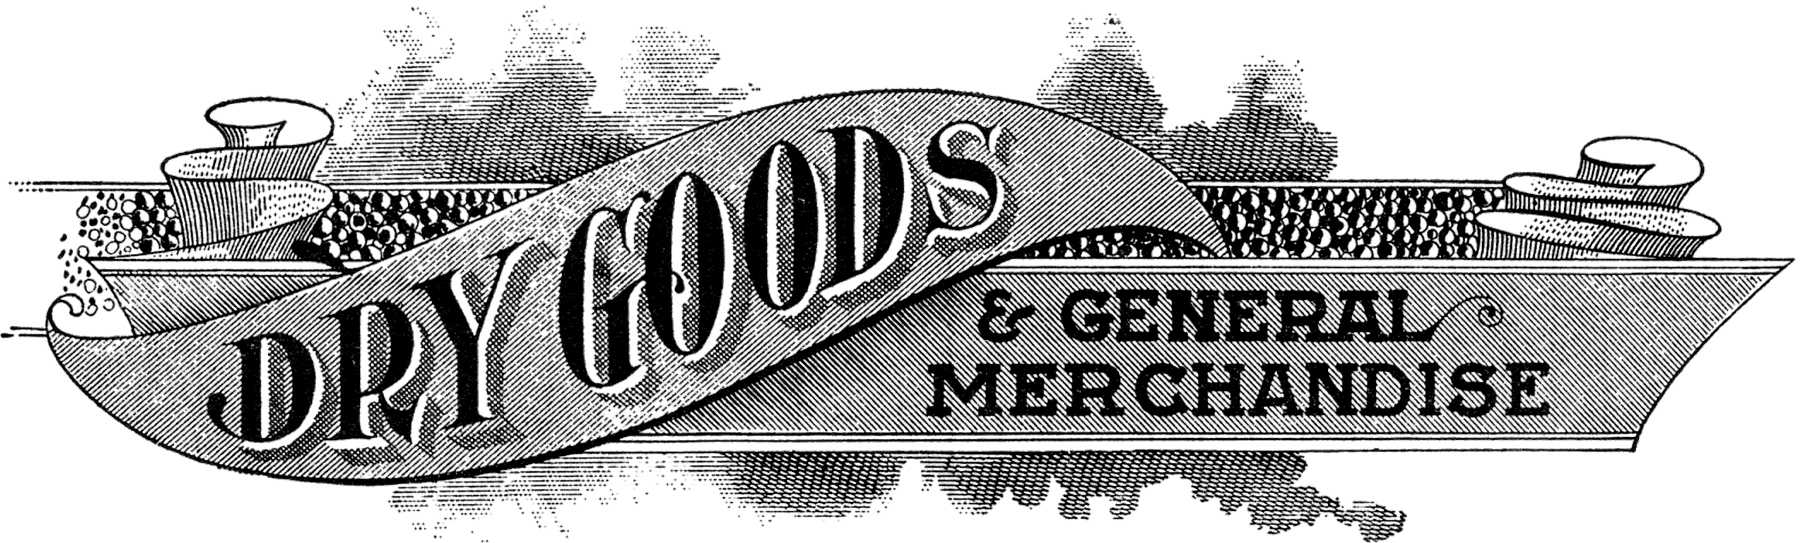 Antique Dry Goods Trade Sign    The Graphics Fairy